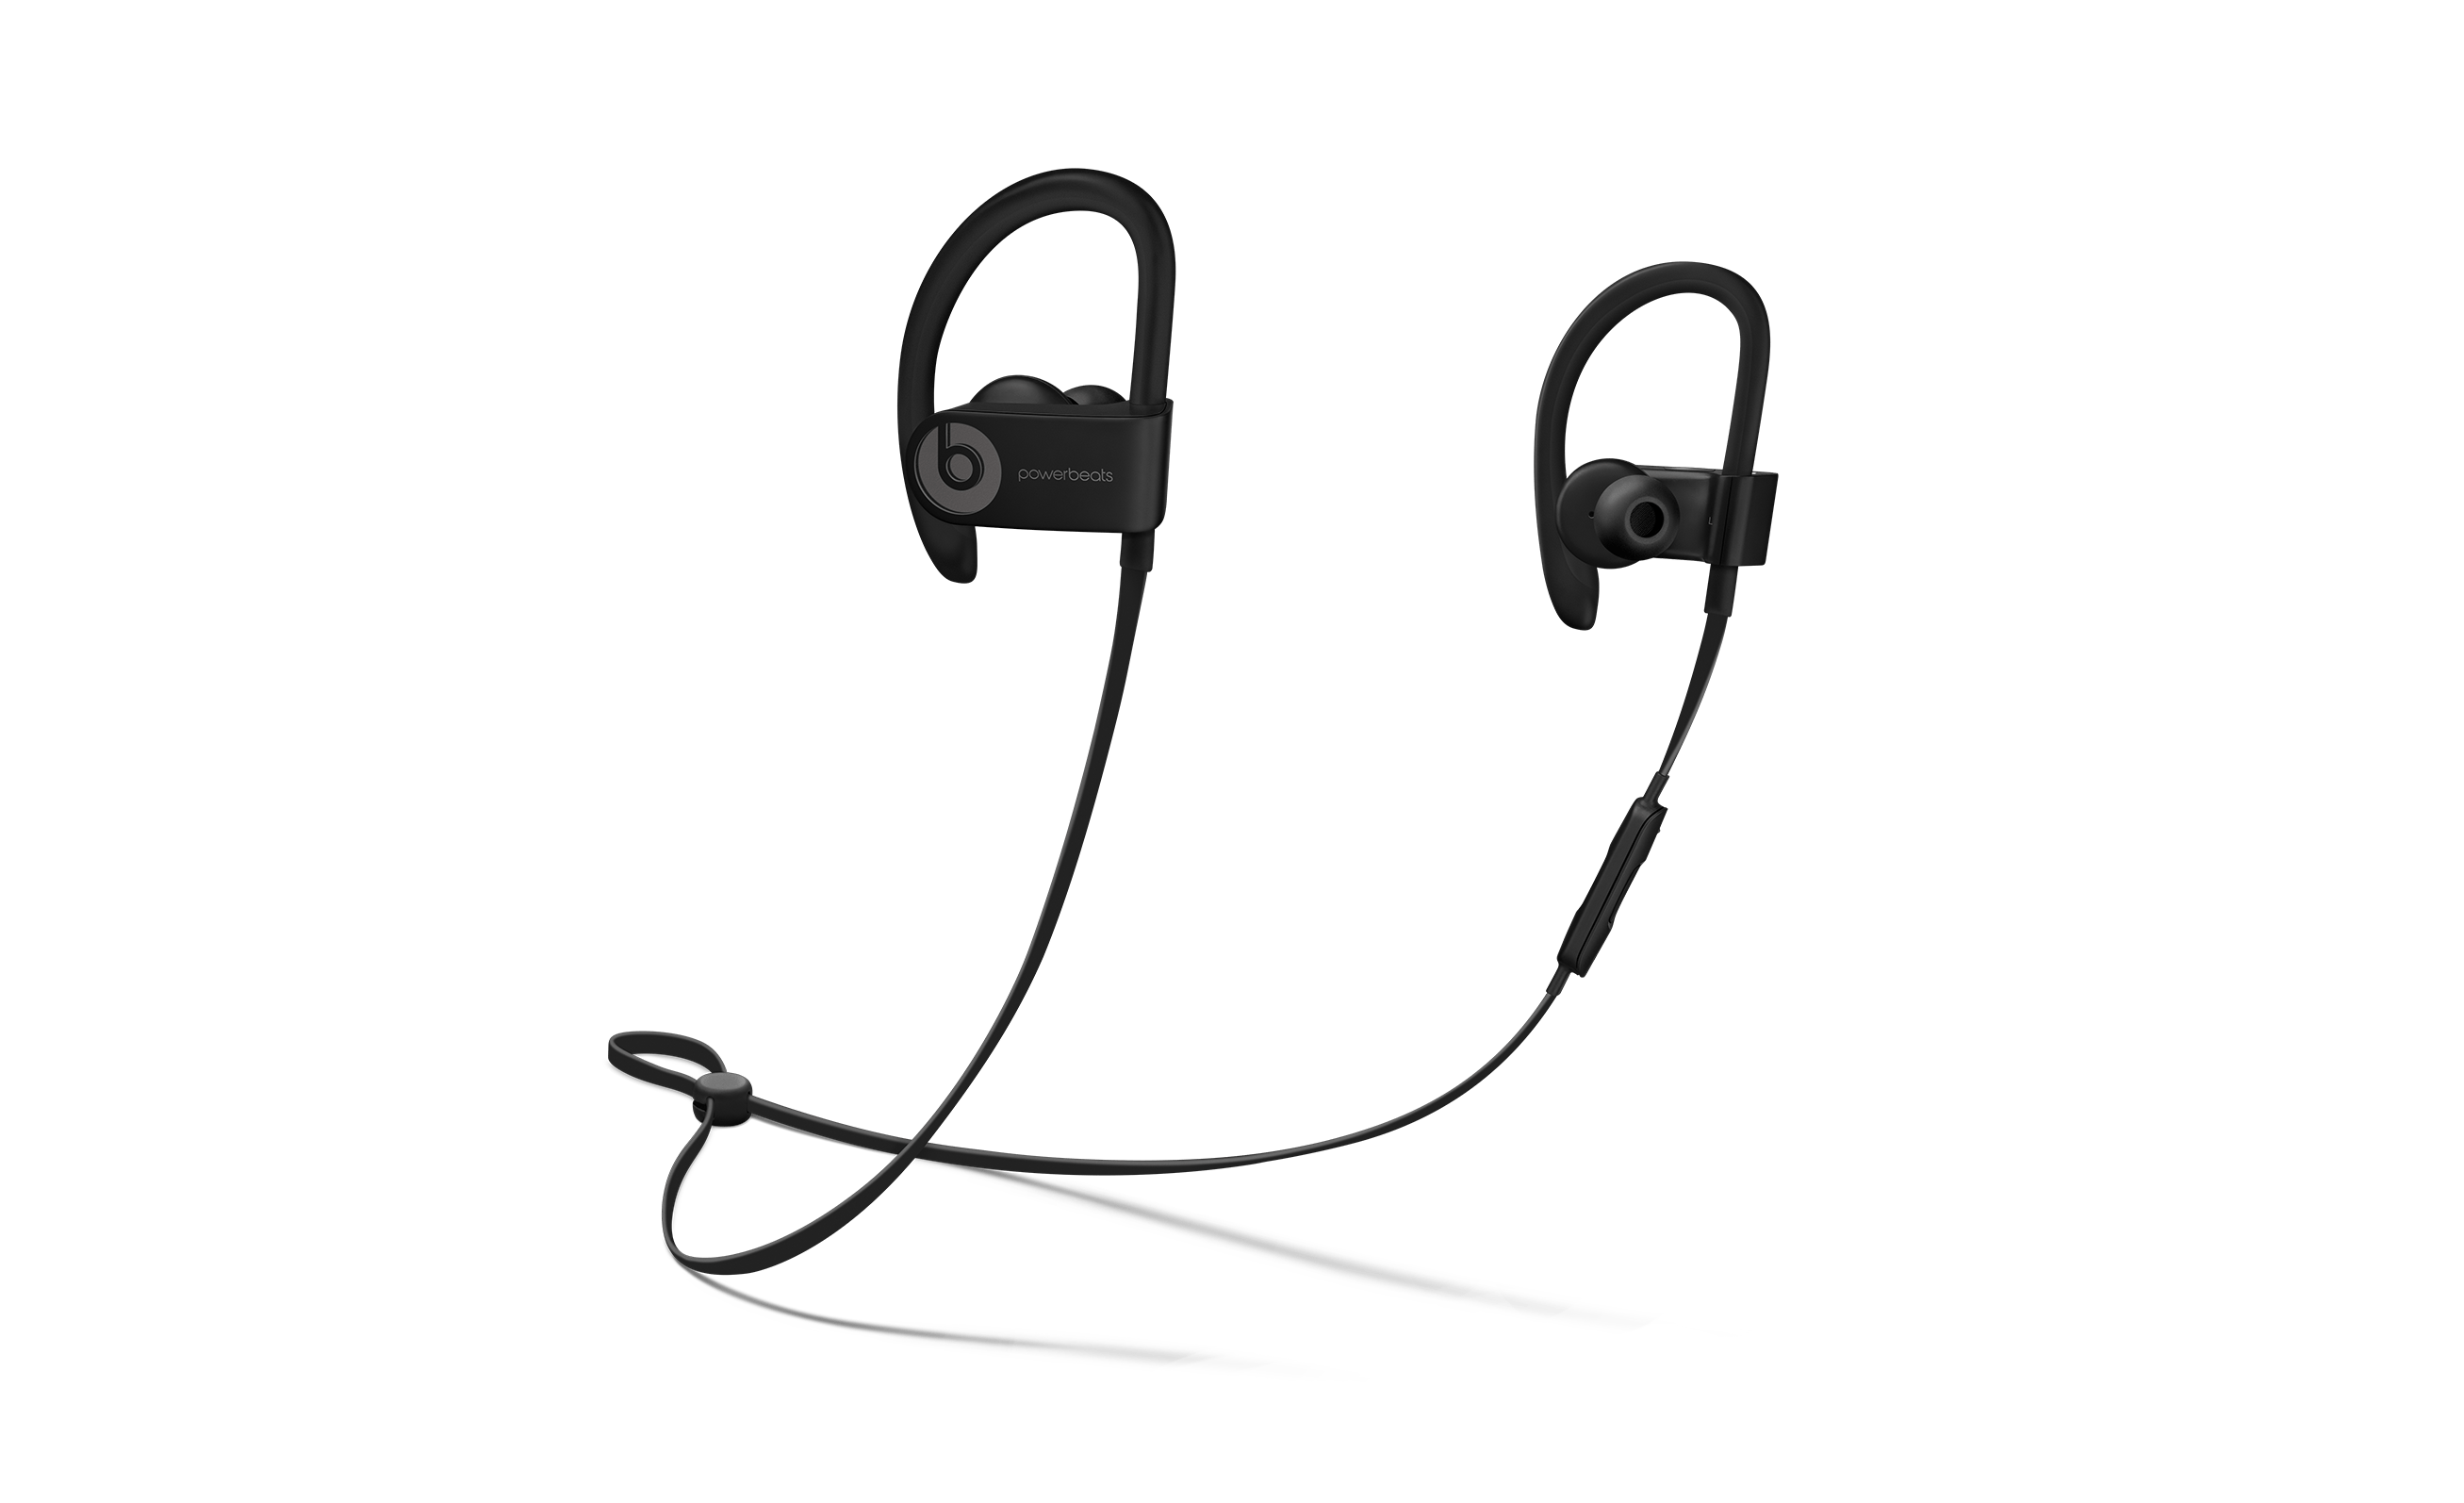 06ebd61d8e2 Apple is reportedly launching truly wireless Powerbeats earbuds in April